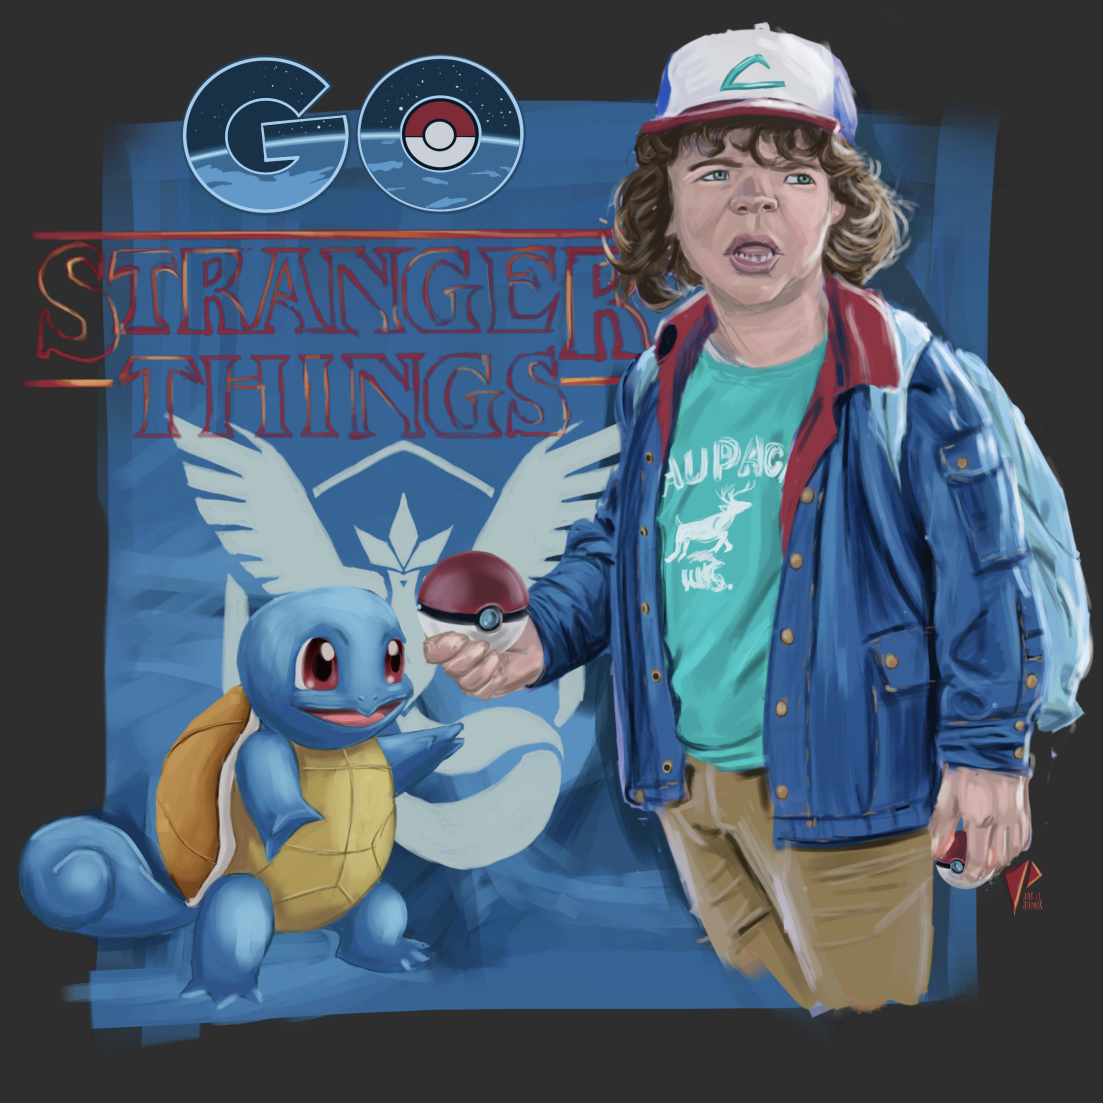 Dustin w/ Squirtle